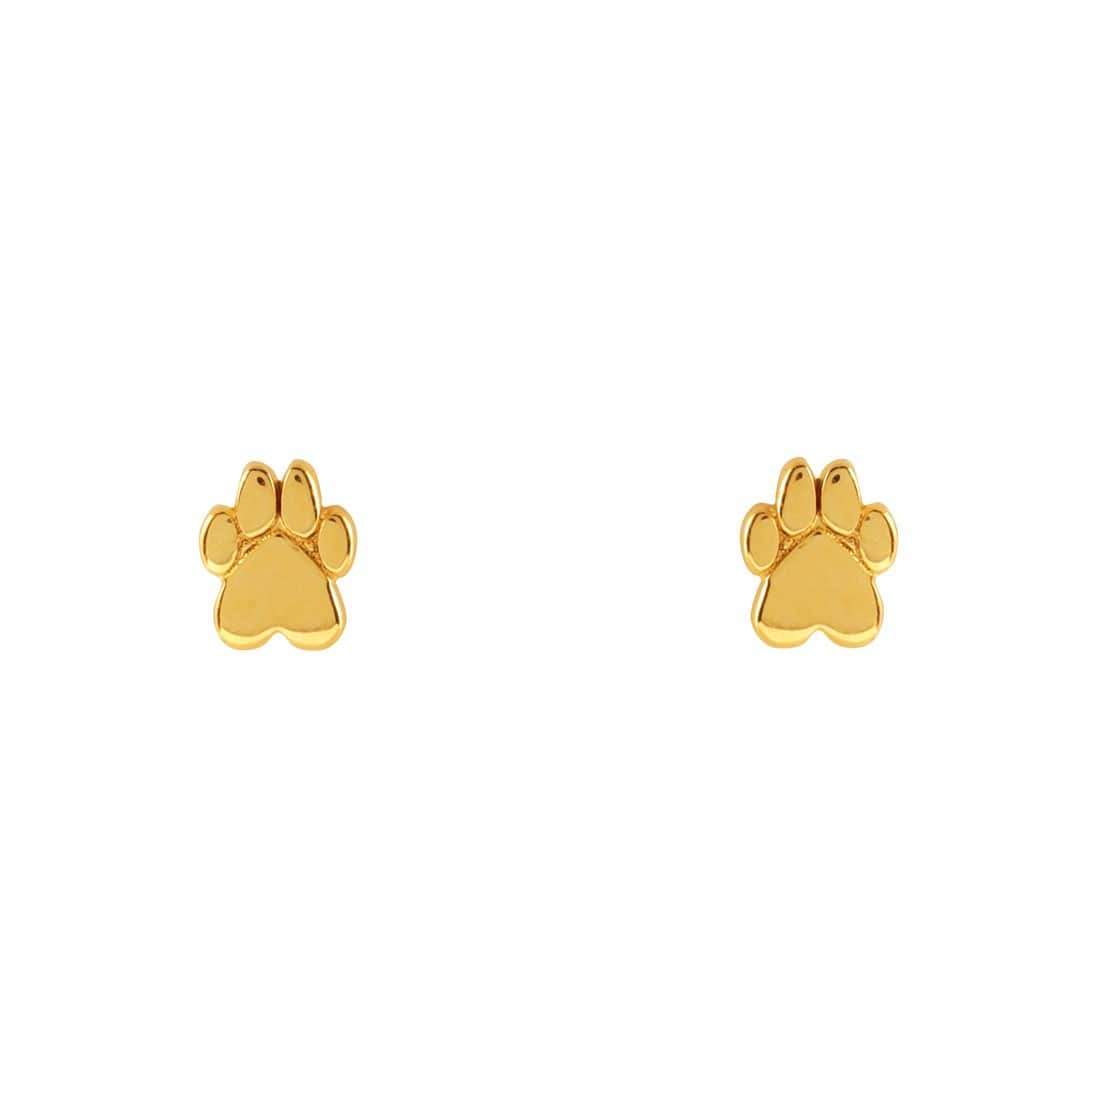 Midsummer Star Earrings Gold Cub Paw Studs